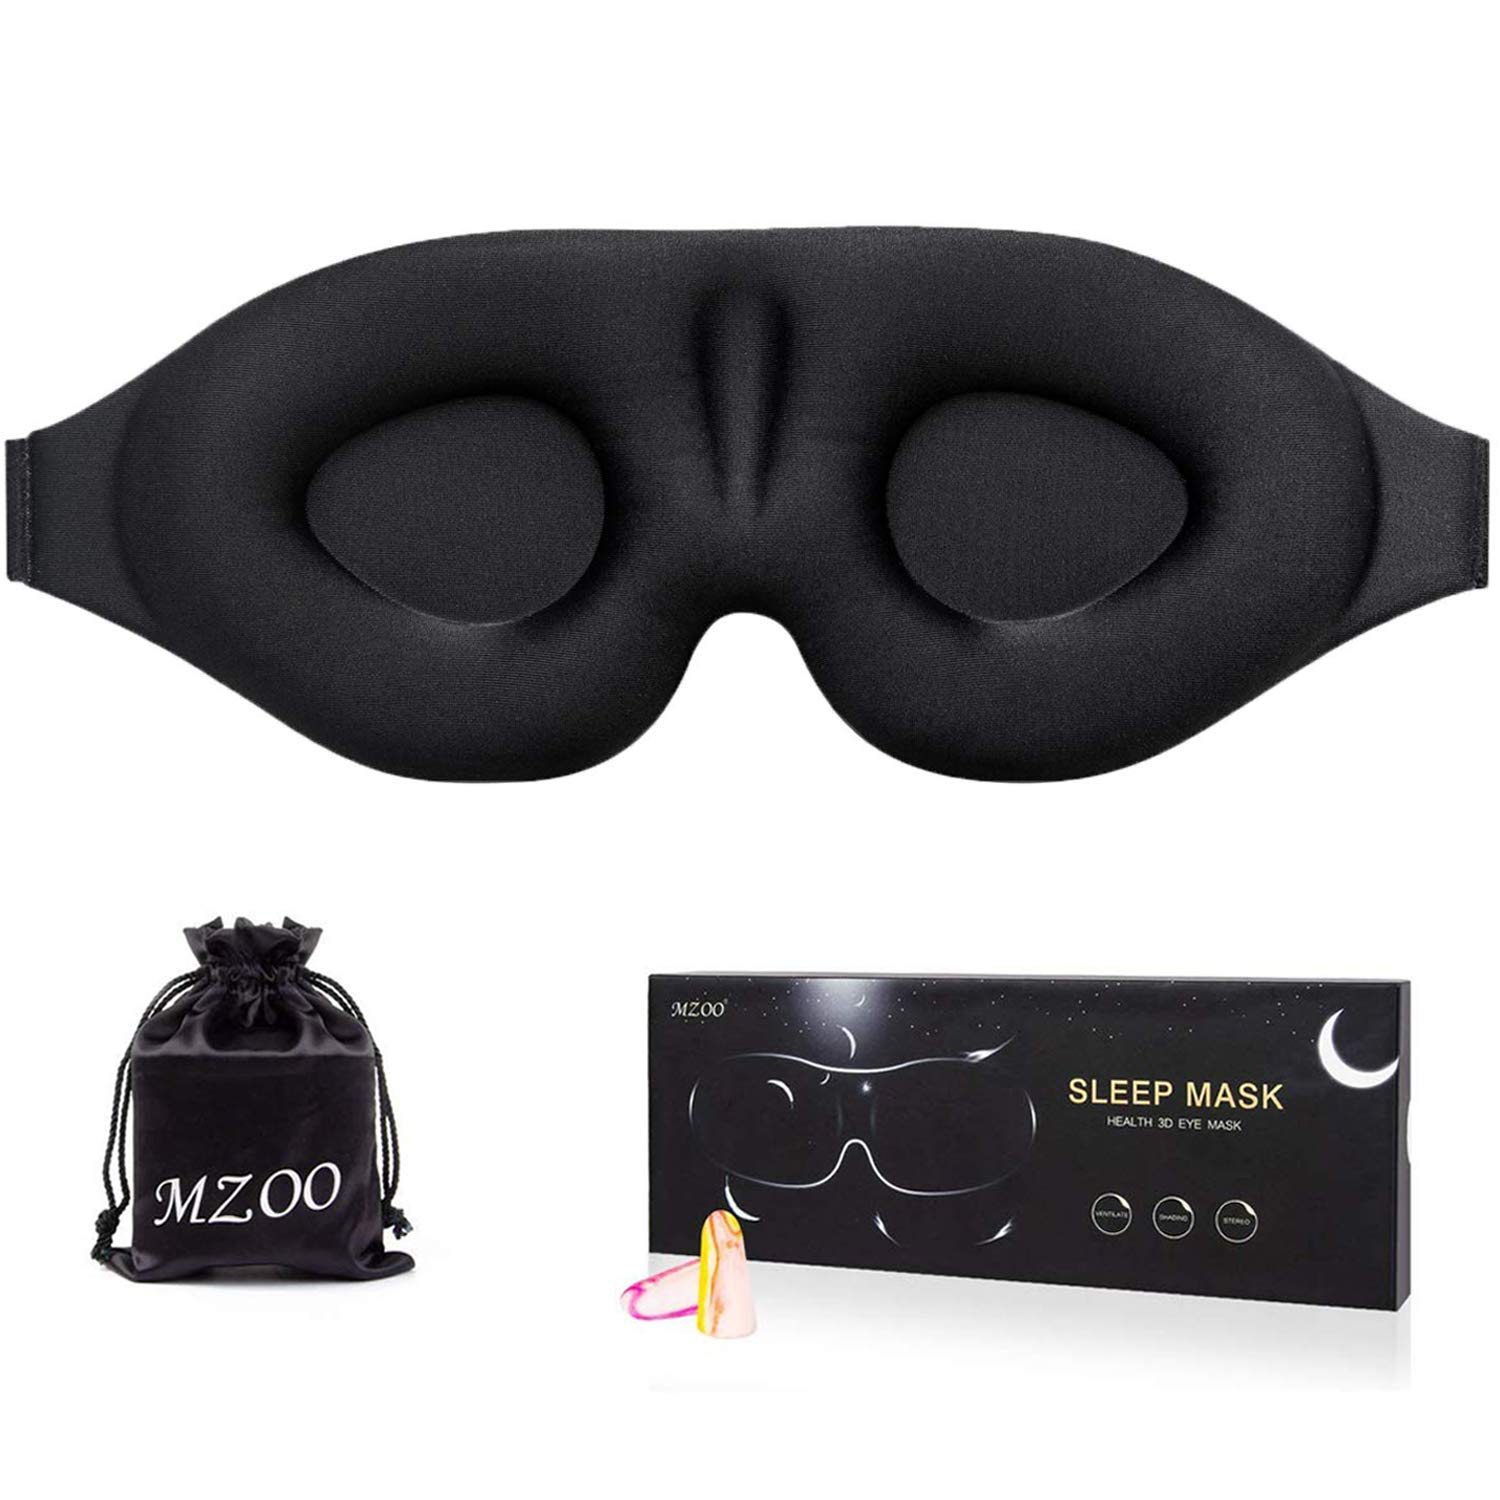 Sleep Eye Mask for Men Women, 3D Contoured Cup Sleeping Mask & Blindfold with Ear Plug Travel Pouch, Concave Molded Night Sleep Mask, Block Out Light, Soft Comfort Eye Shade Cover for Yoga Meditation by MZOO